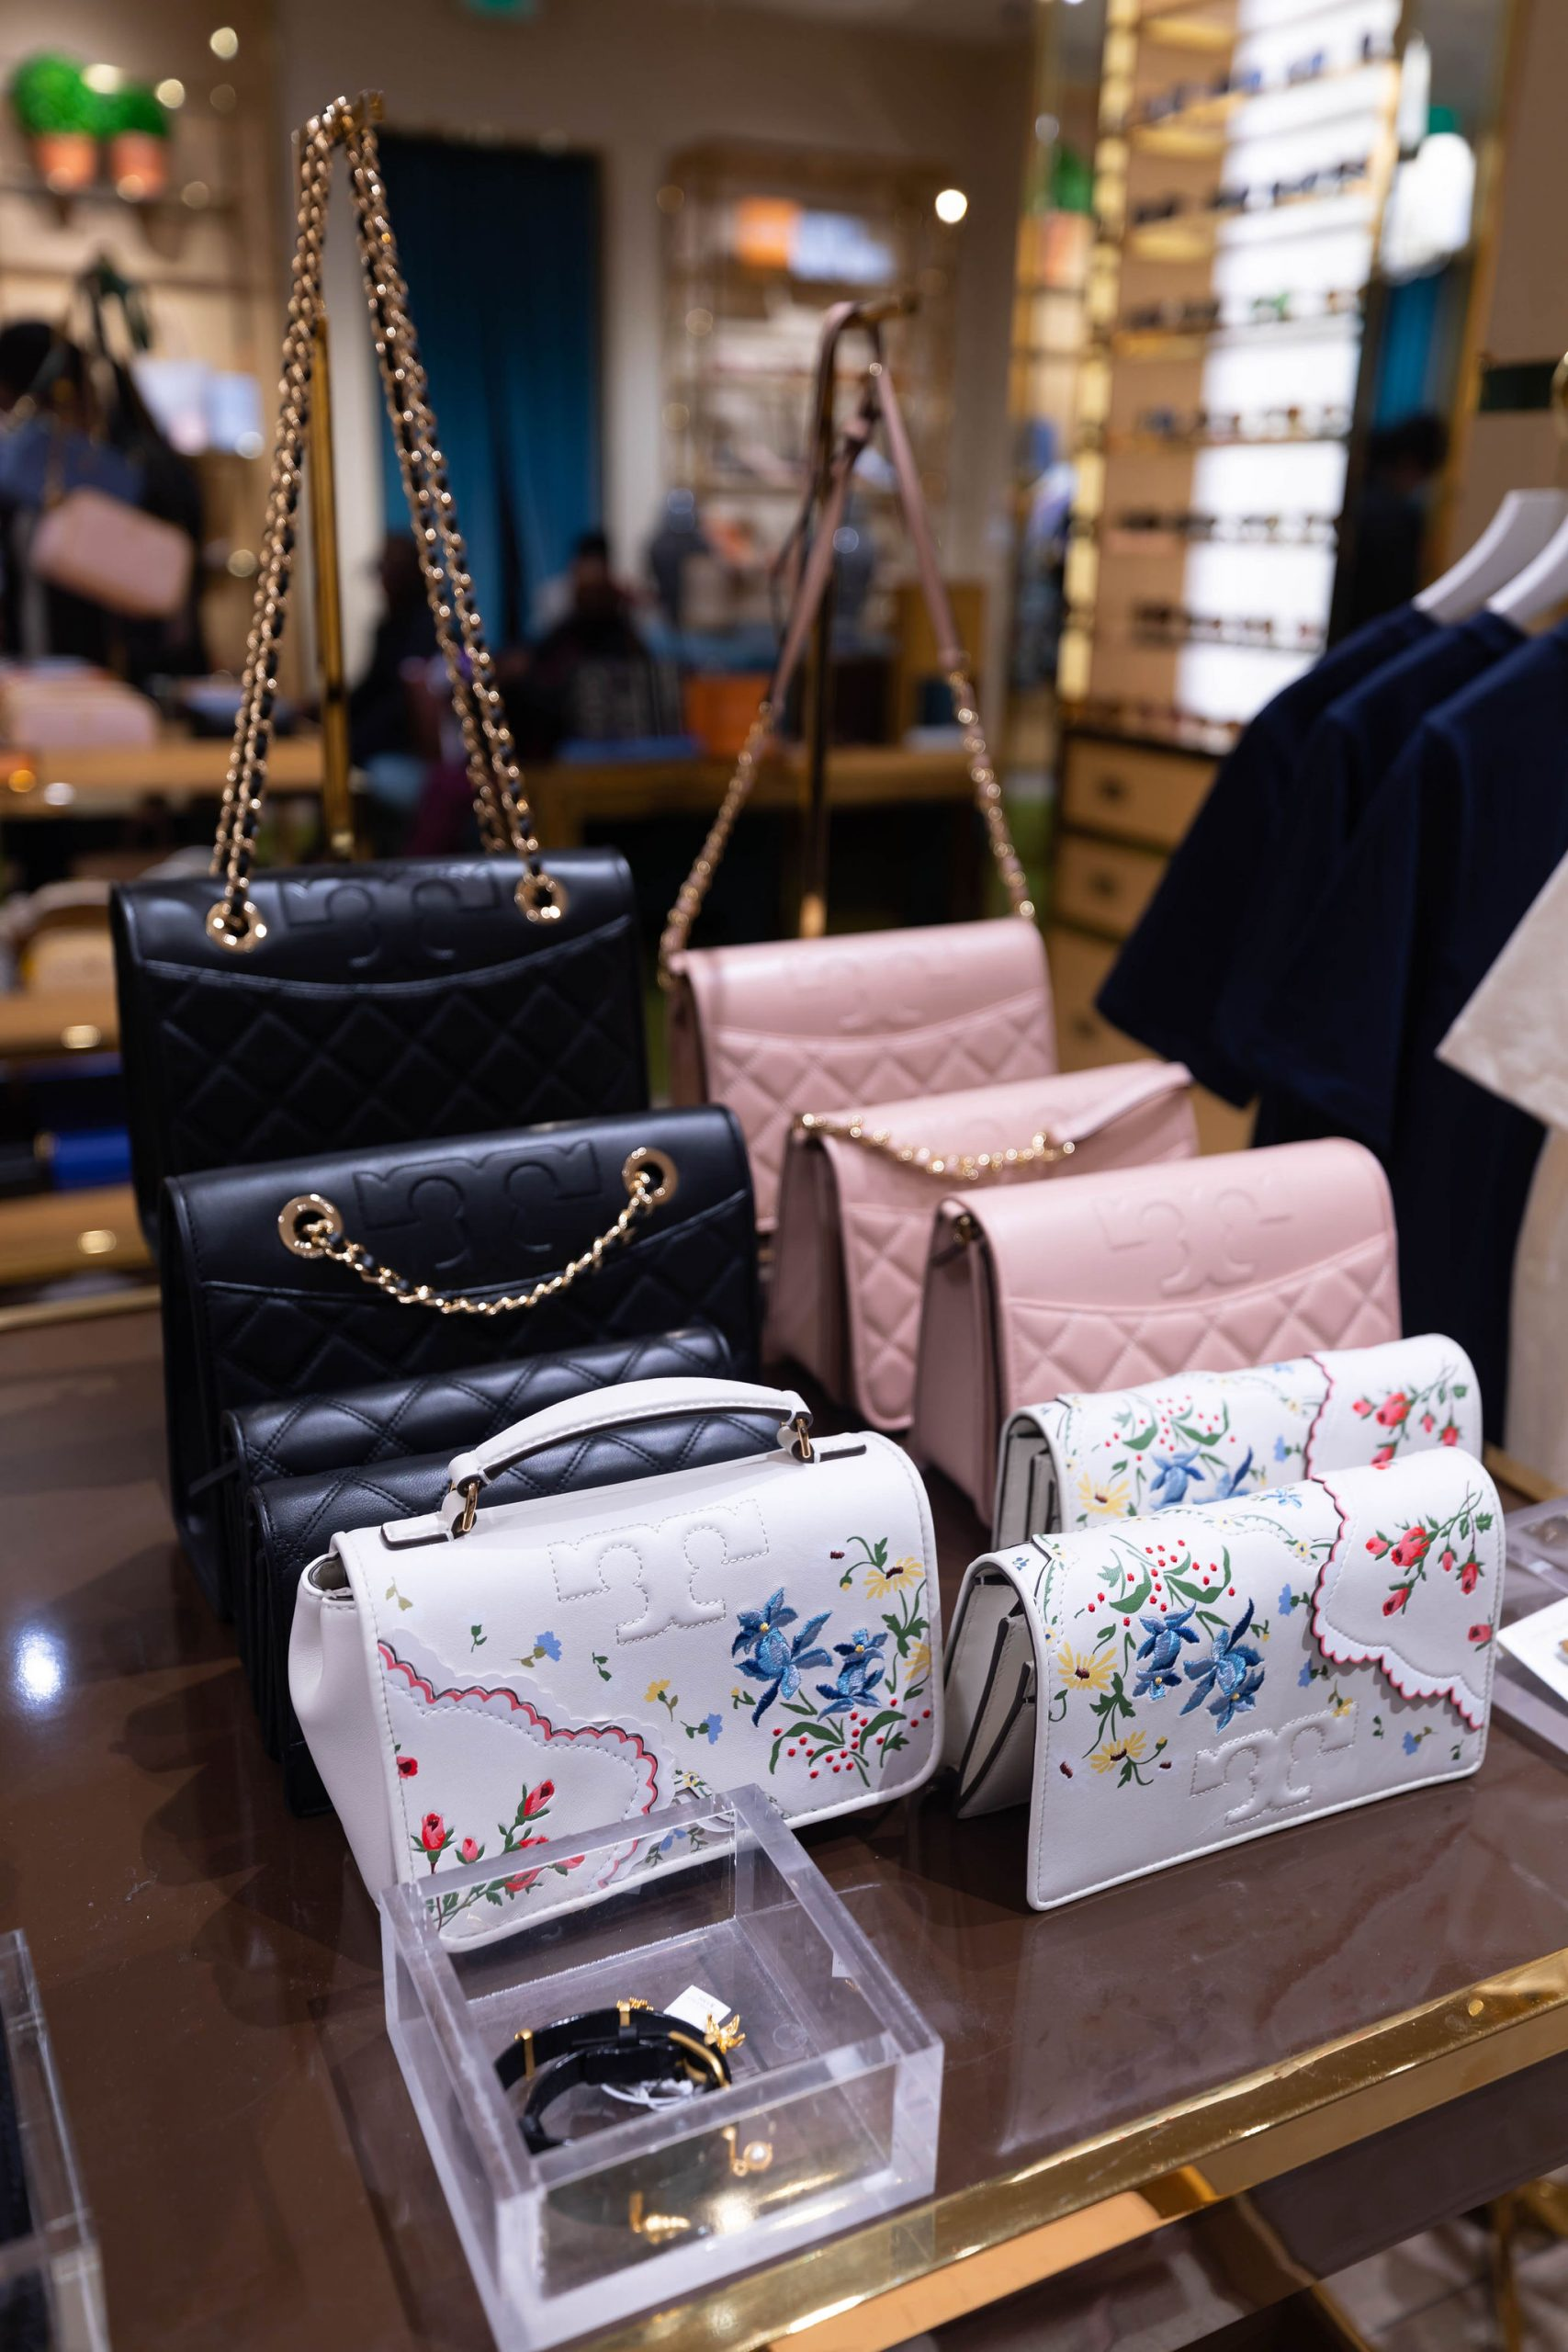 Tory Burch Outlet at Fashion Outlets of Chicago Tory Burch Outlet Up to 80% off Designer Fashion by Annie Fairfax